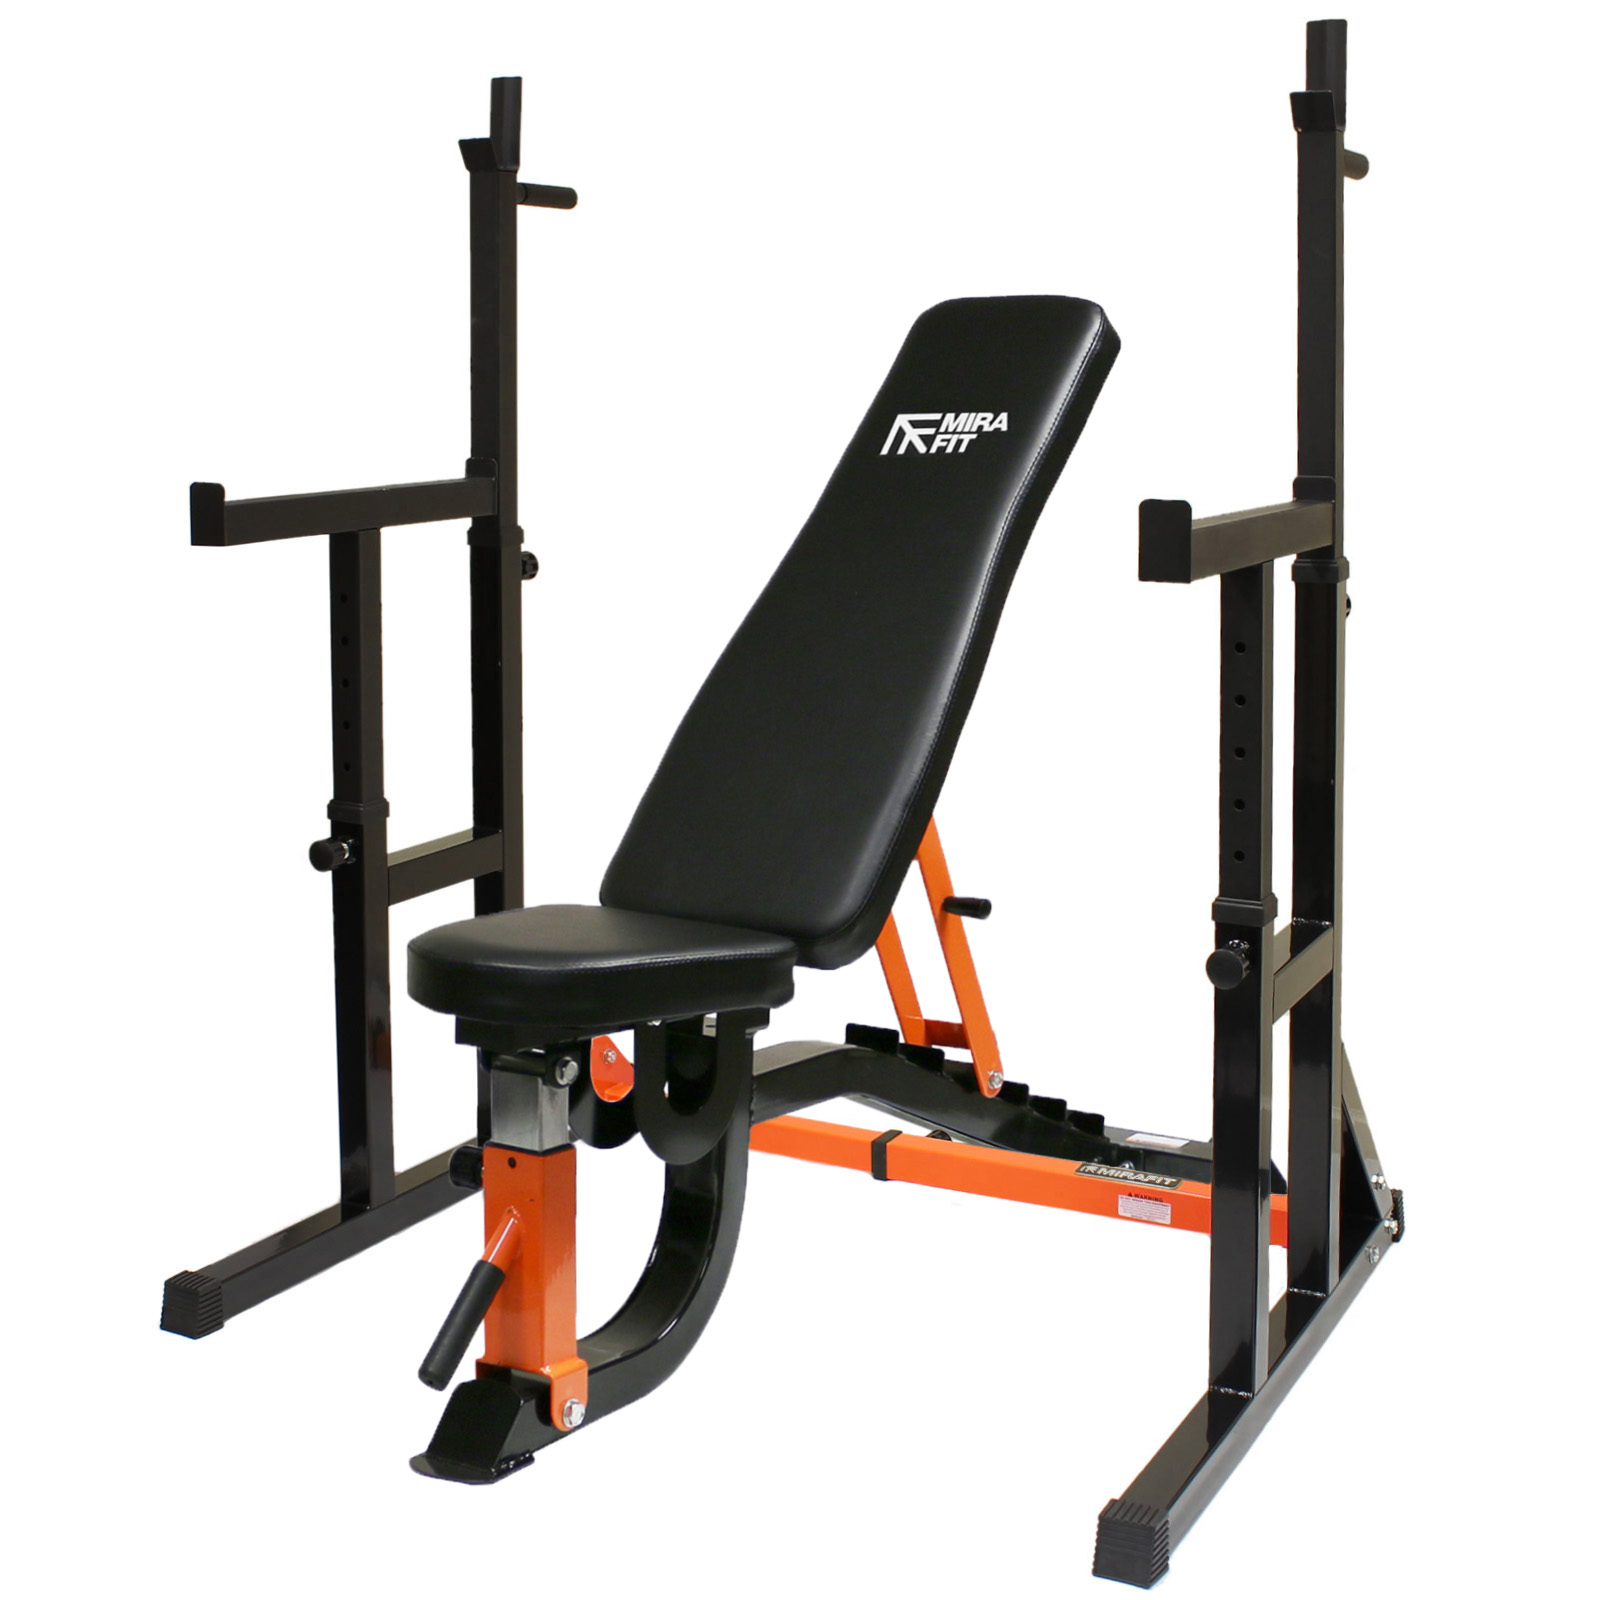 Mirafit Hd Adjustable Fid Weight Bench Amp Squat Rack Dip